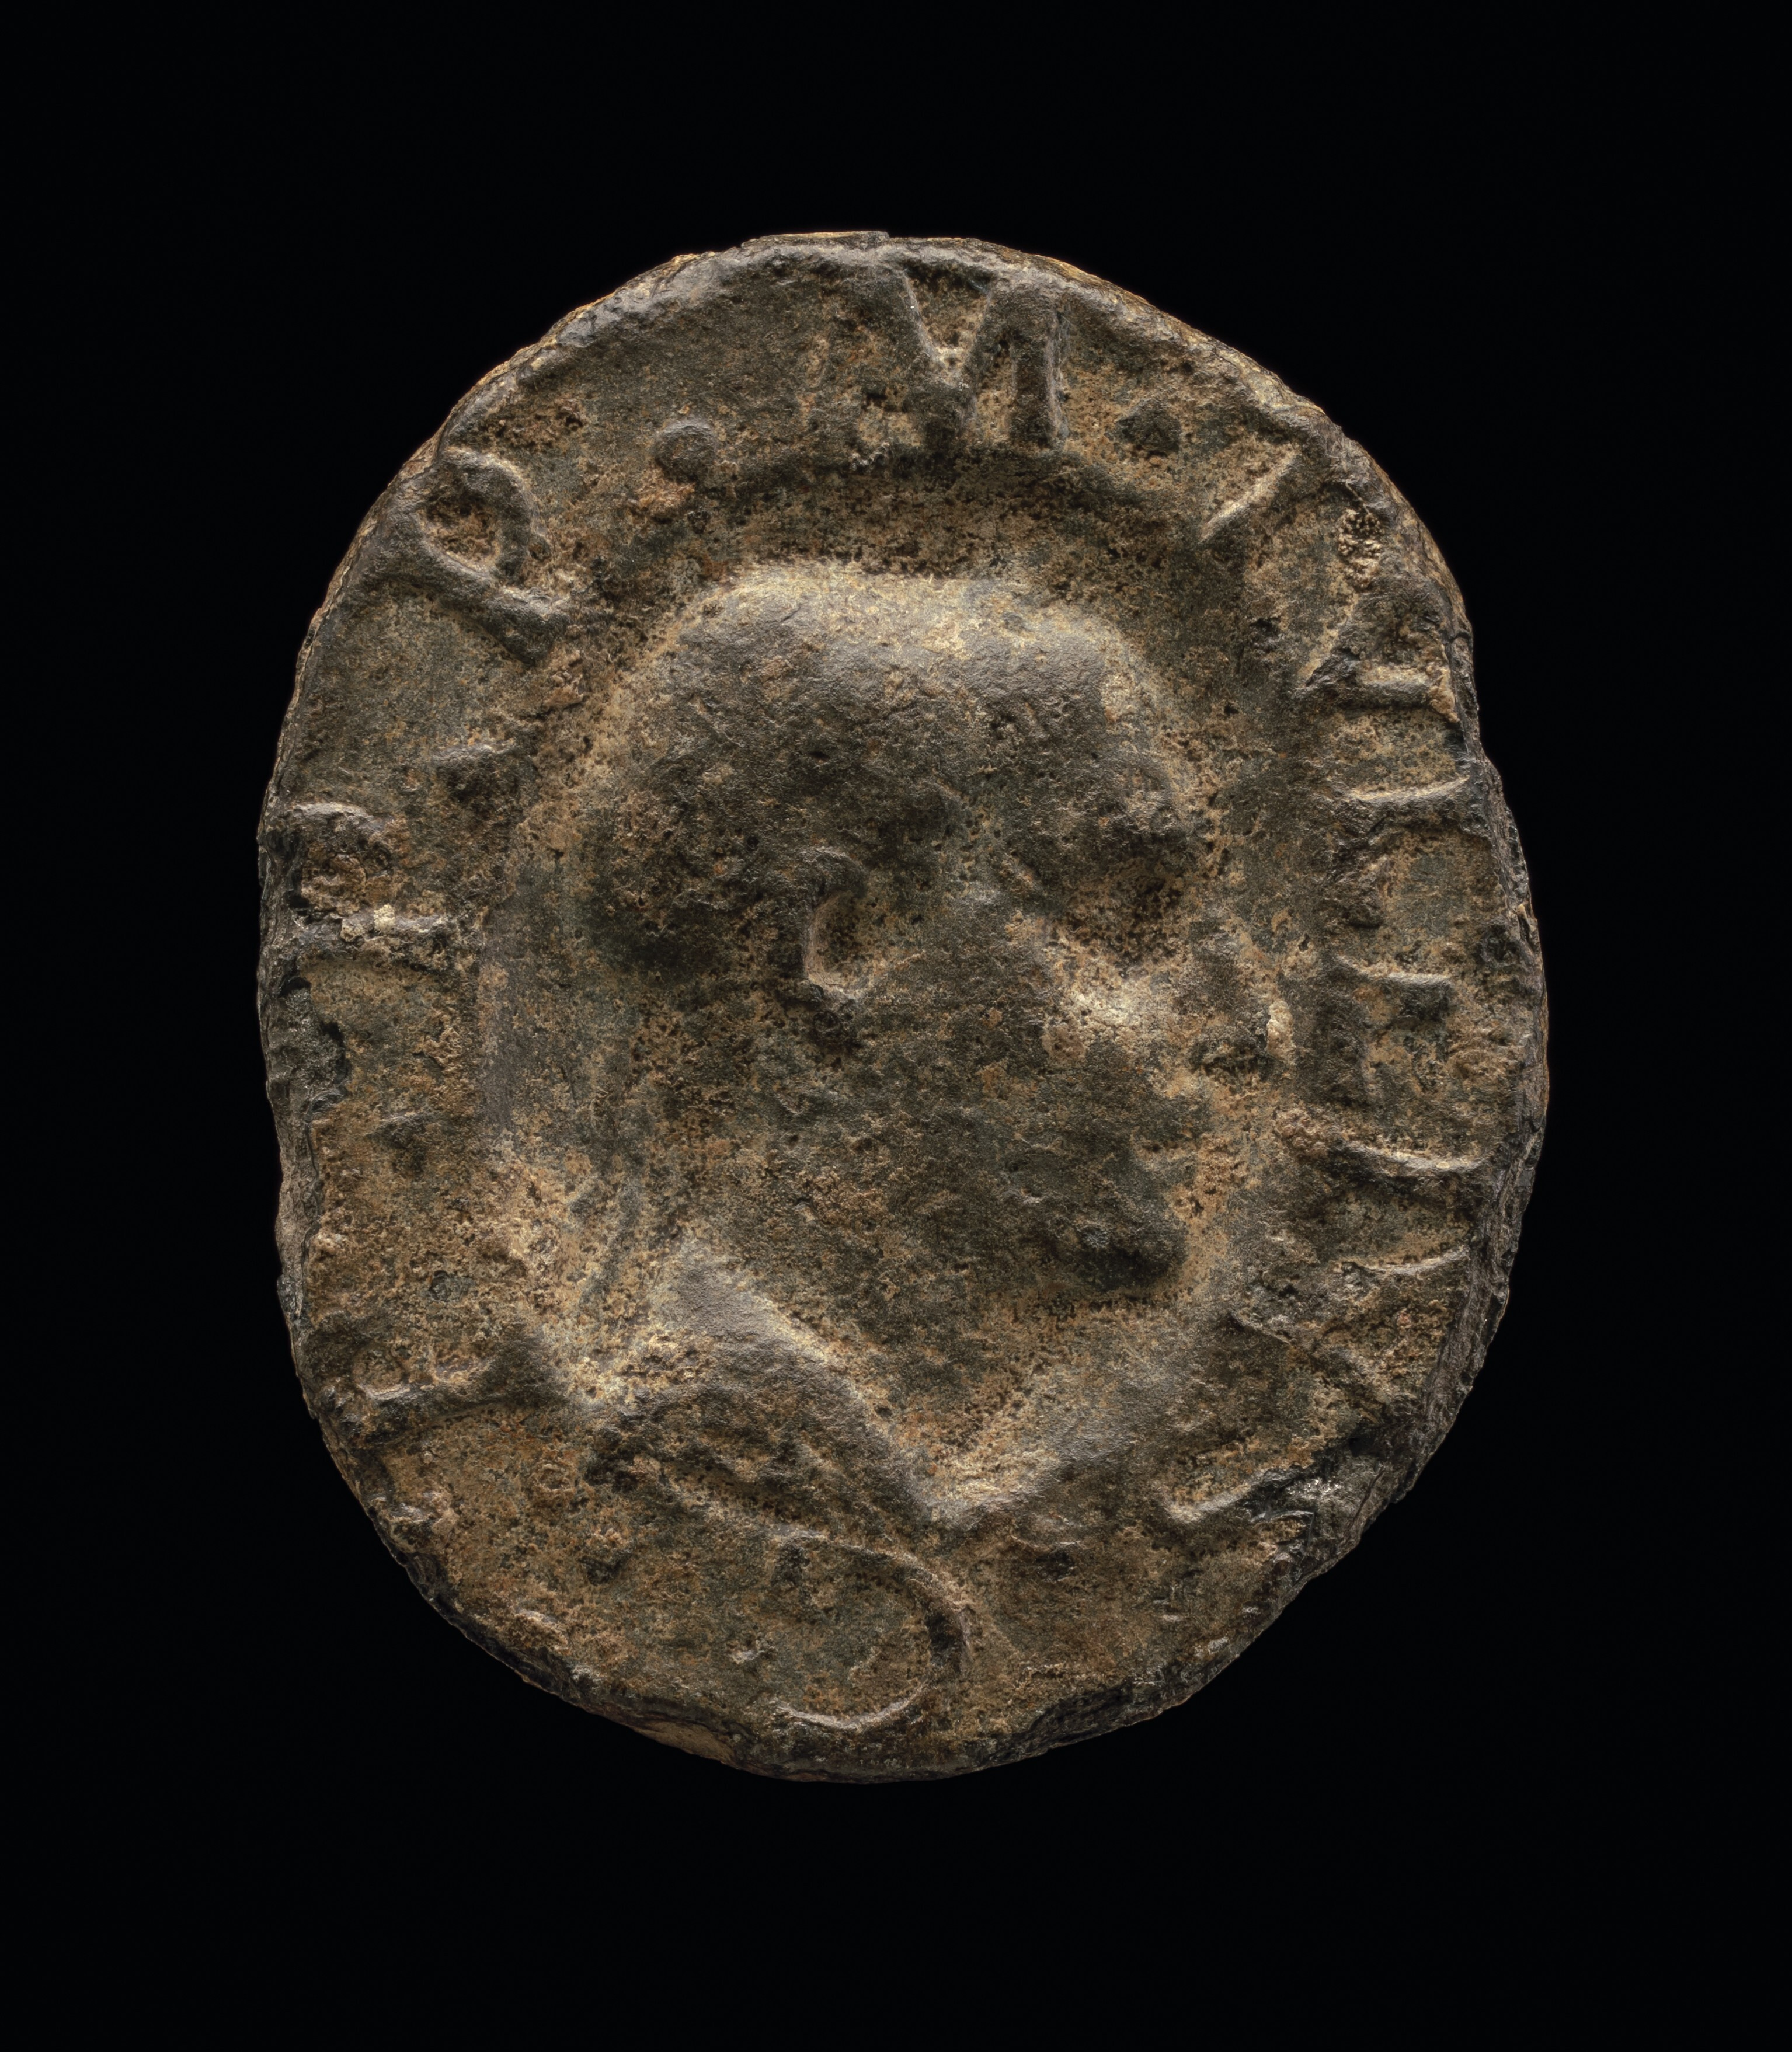 Pewter irregular oval with a head in profile in the middle; around circumference: M[ARCUS].TVLLIVS.C[ICERO].P[RIMUS].P[ATER].P[ATRIAE]. (Marcus Tullius Cicero, first father of his country)